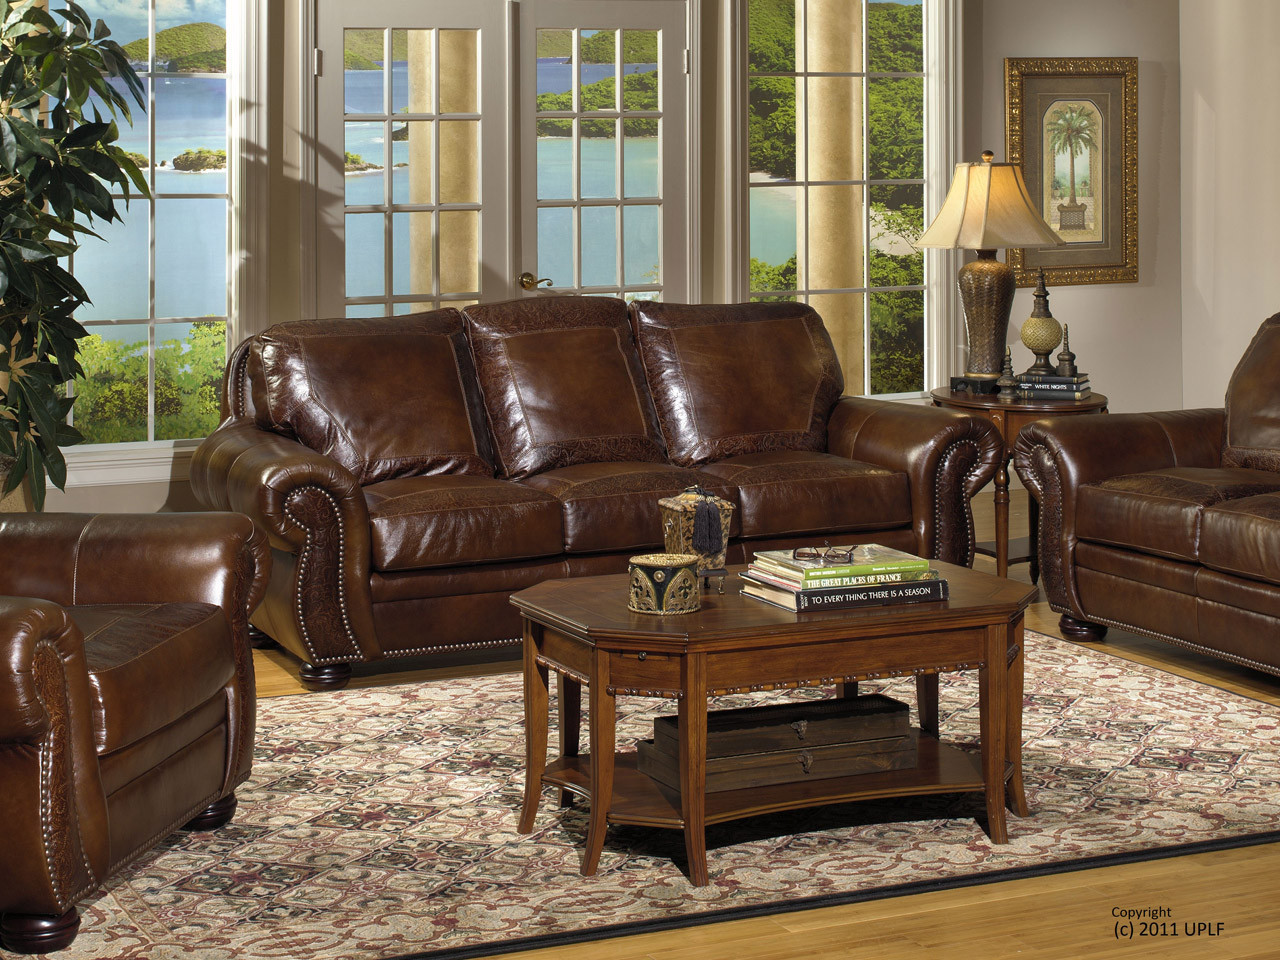 power reclining sofa made in usa small sectional 8555 leather love seat chair ottoman rocking recliner and